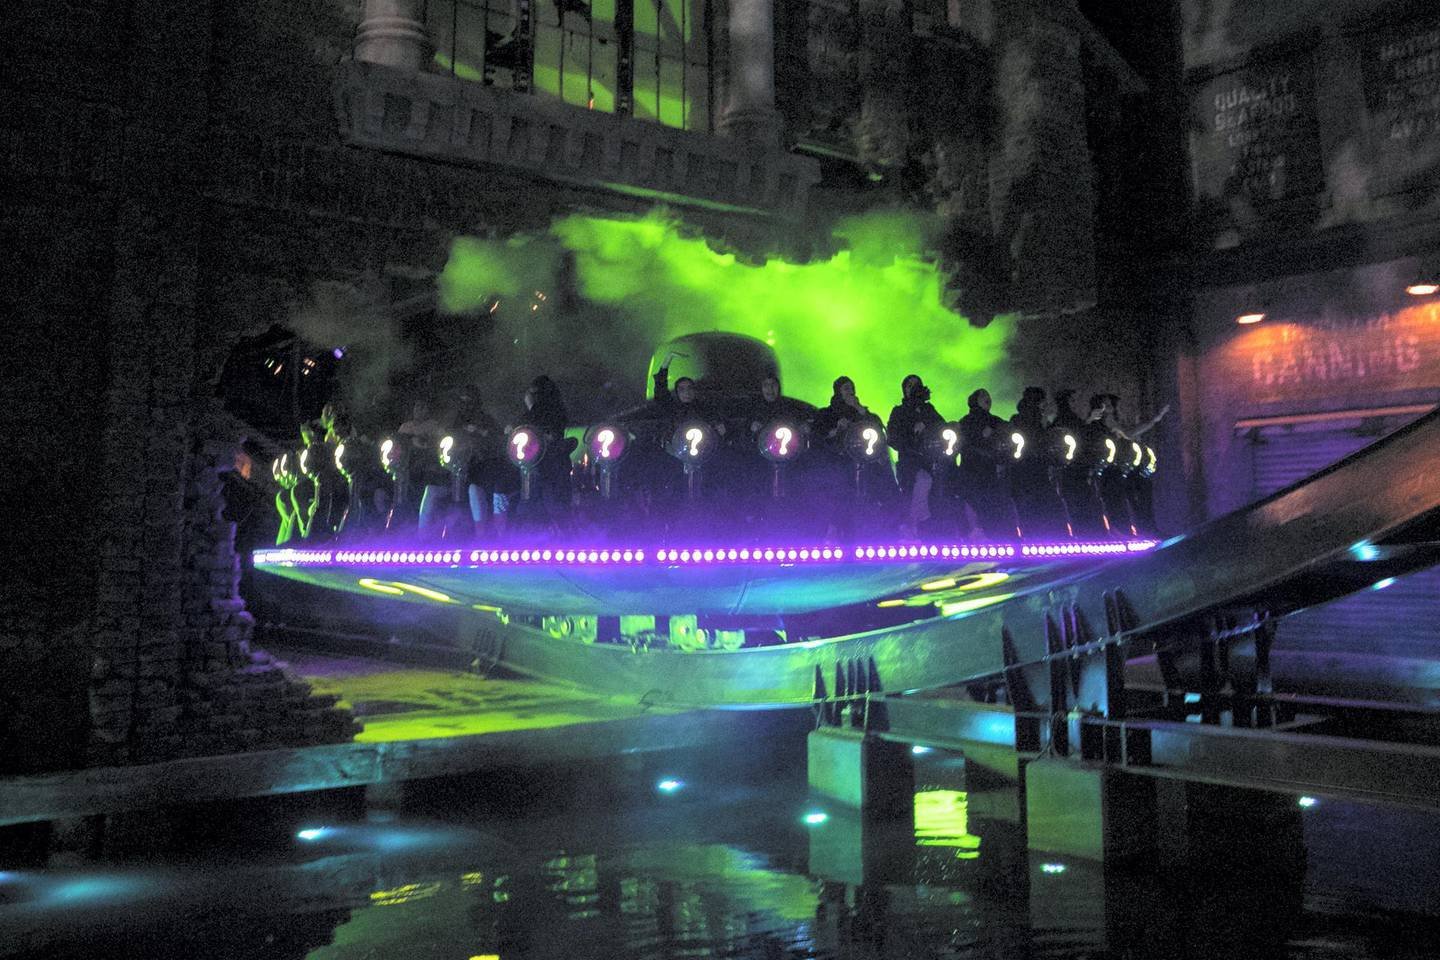 ABU DHABI, UNITED ARAB EMIRATES - JULY 24, 2018. The Riddler Revolution ride at Gotham city in Warner Bros World Abu Dhabi.Almost 15,000 tickets for Warner Bros World Abu Dhabi have been sold ahead of opening to the public on Wednesday.(Photo by Reem Mohammed/The National)Reporter: Section: NA + AL